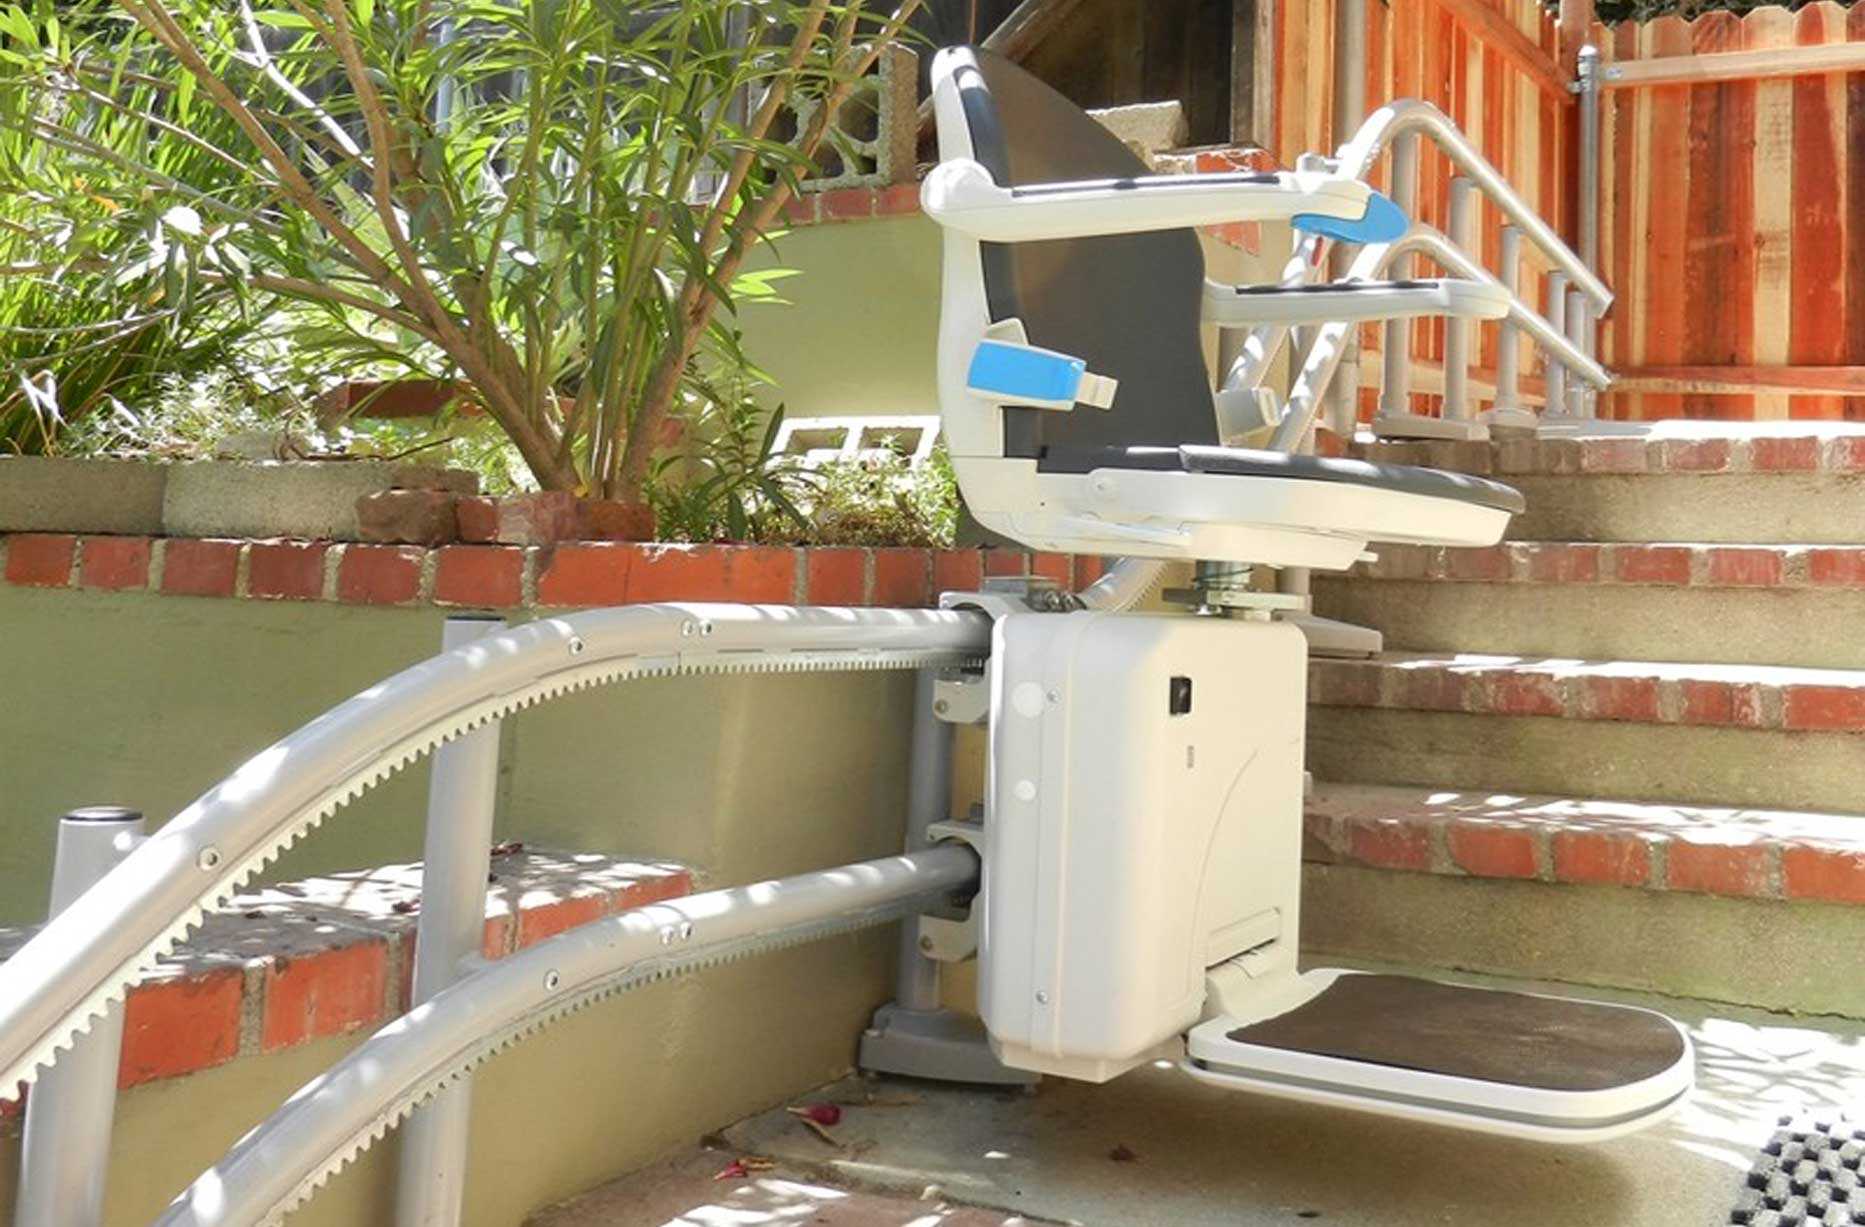 Companion 2000 Curved Stairlift Image